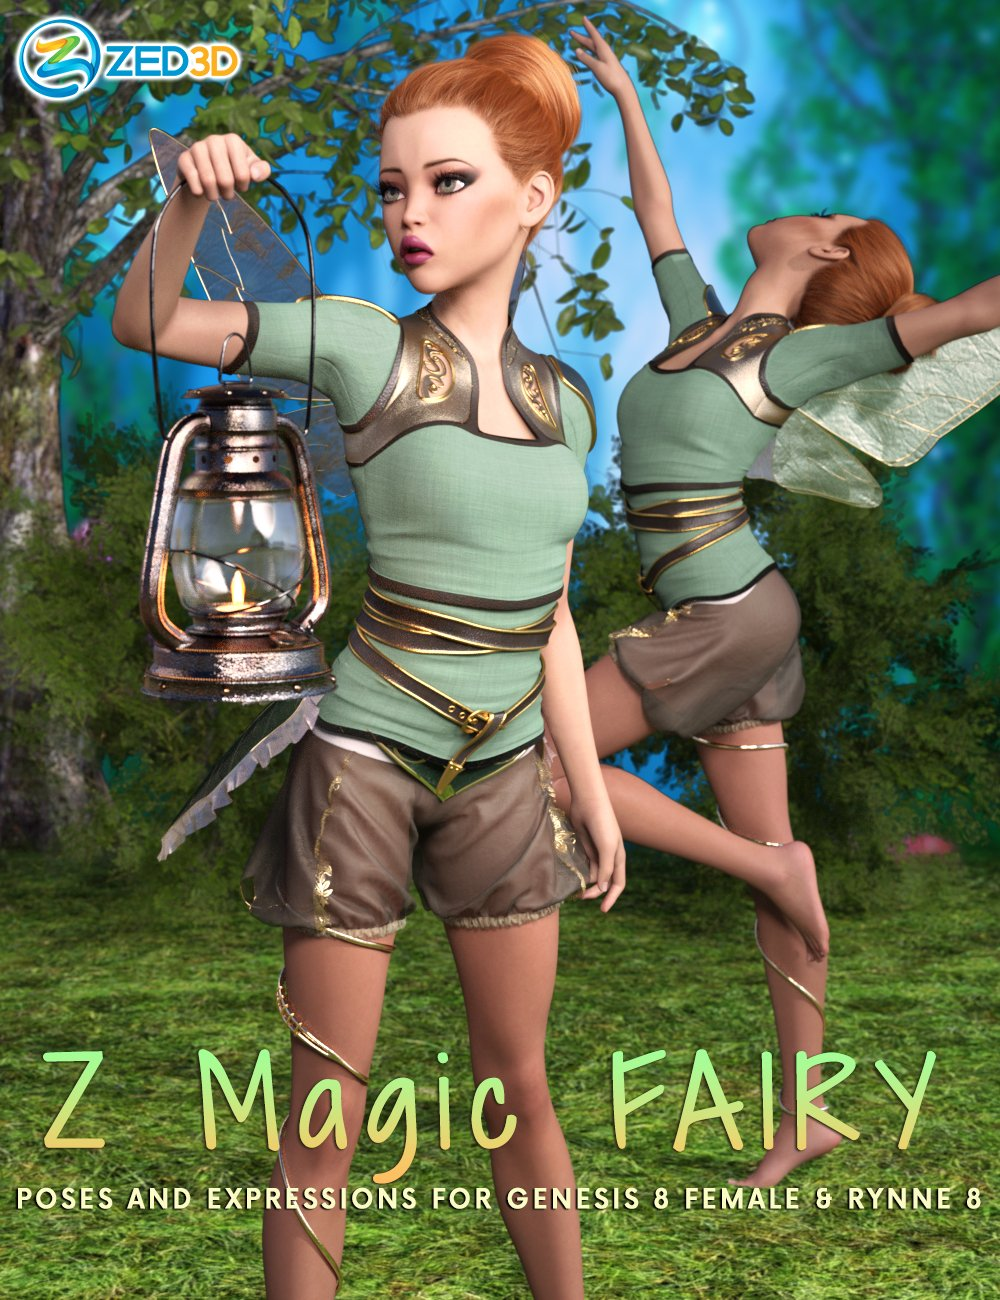 Z Magic Fairy Poses and Expressions for Rynne 8 by: Zeddicuss, 3D Models by Daz 3D